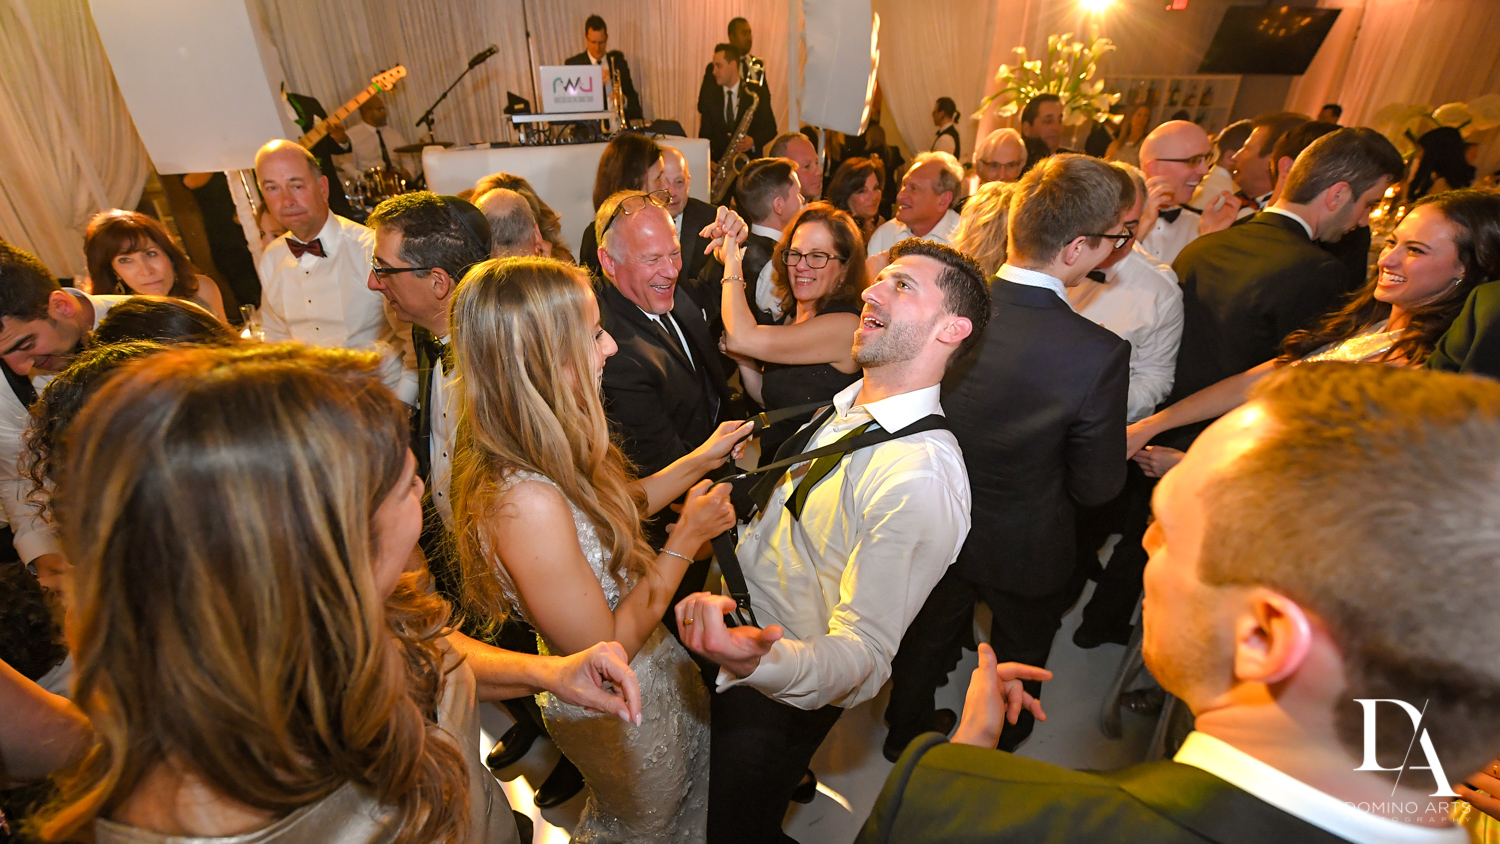 fun party photos at Wedding at Boca Rio Golf Club by Domino Arts Photography